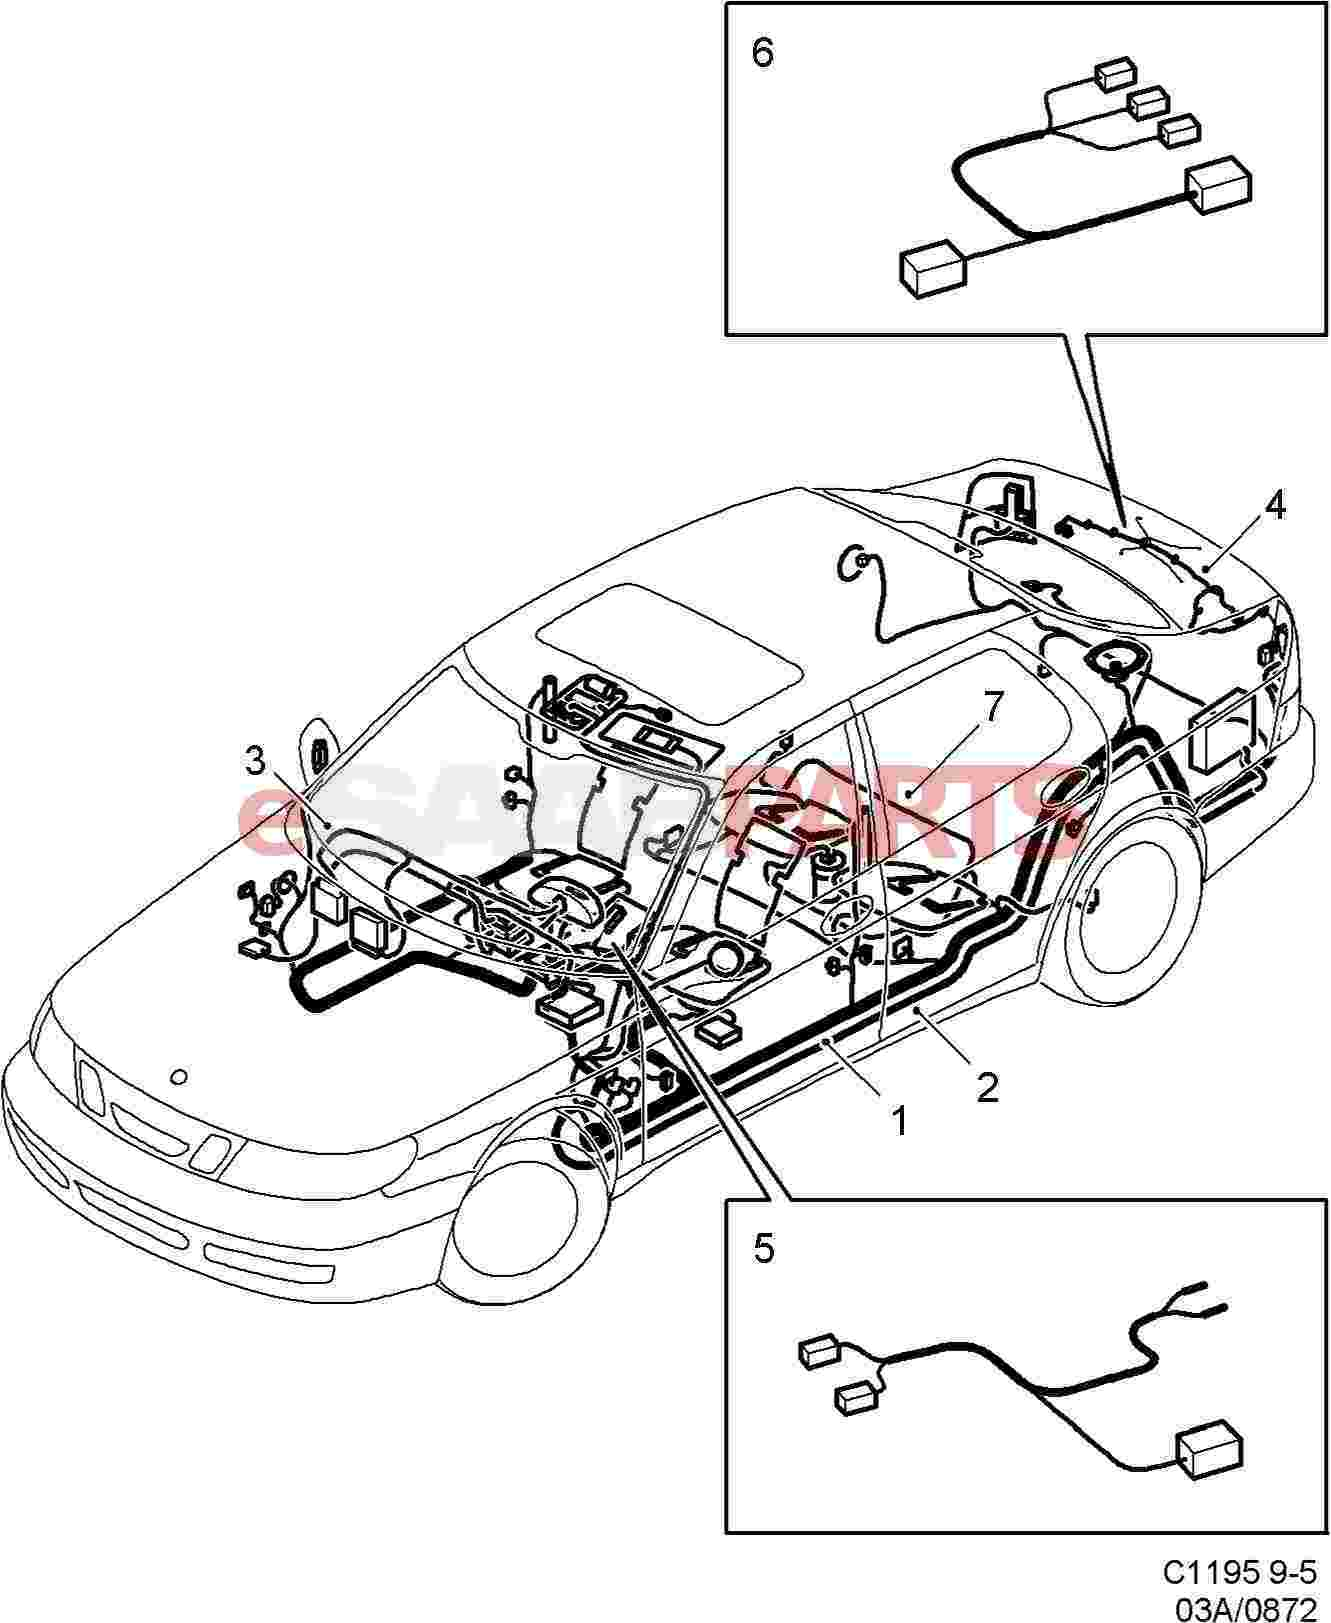 hight resolution of esaabparts com saab 9 5 9600 electrical parts wiring harness rear